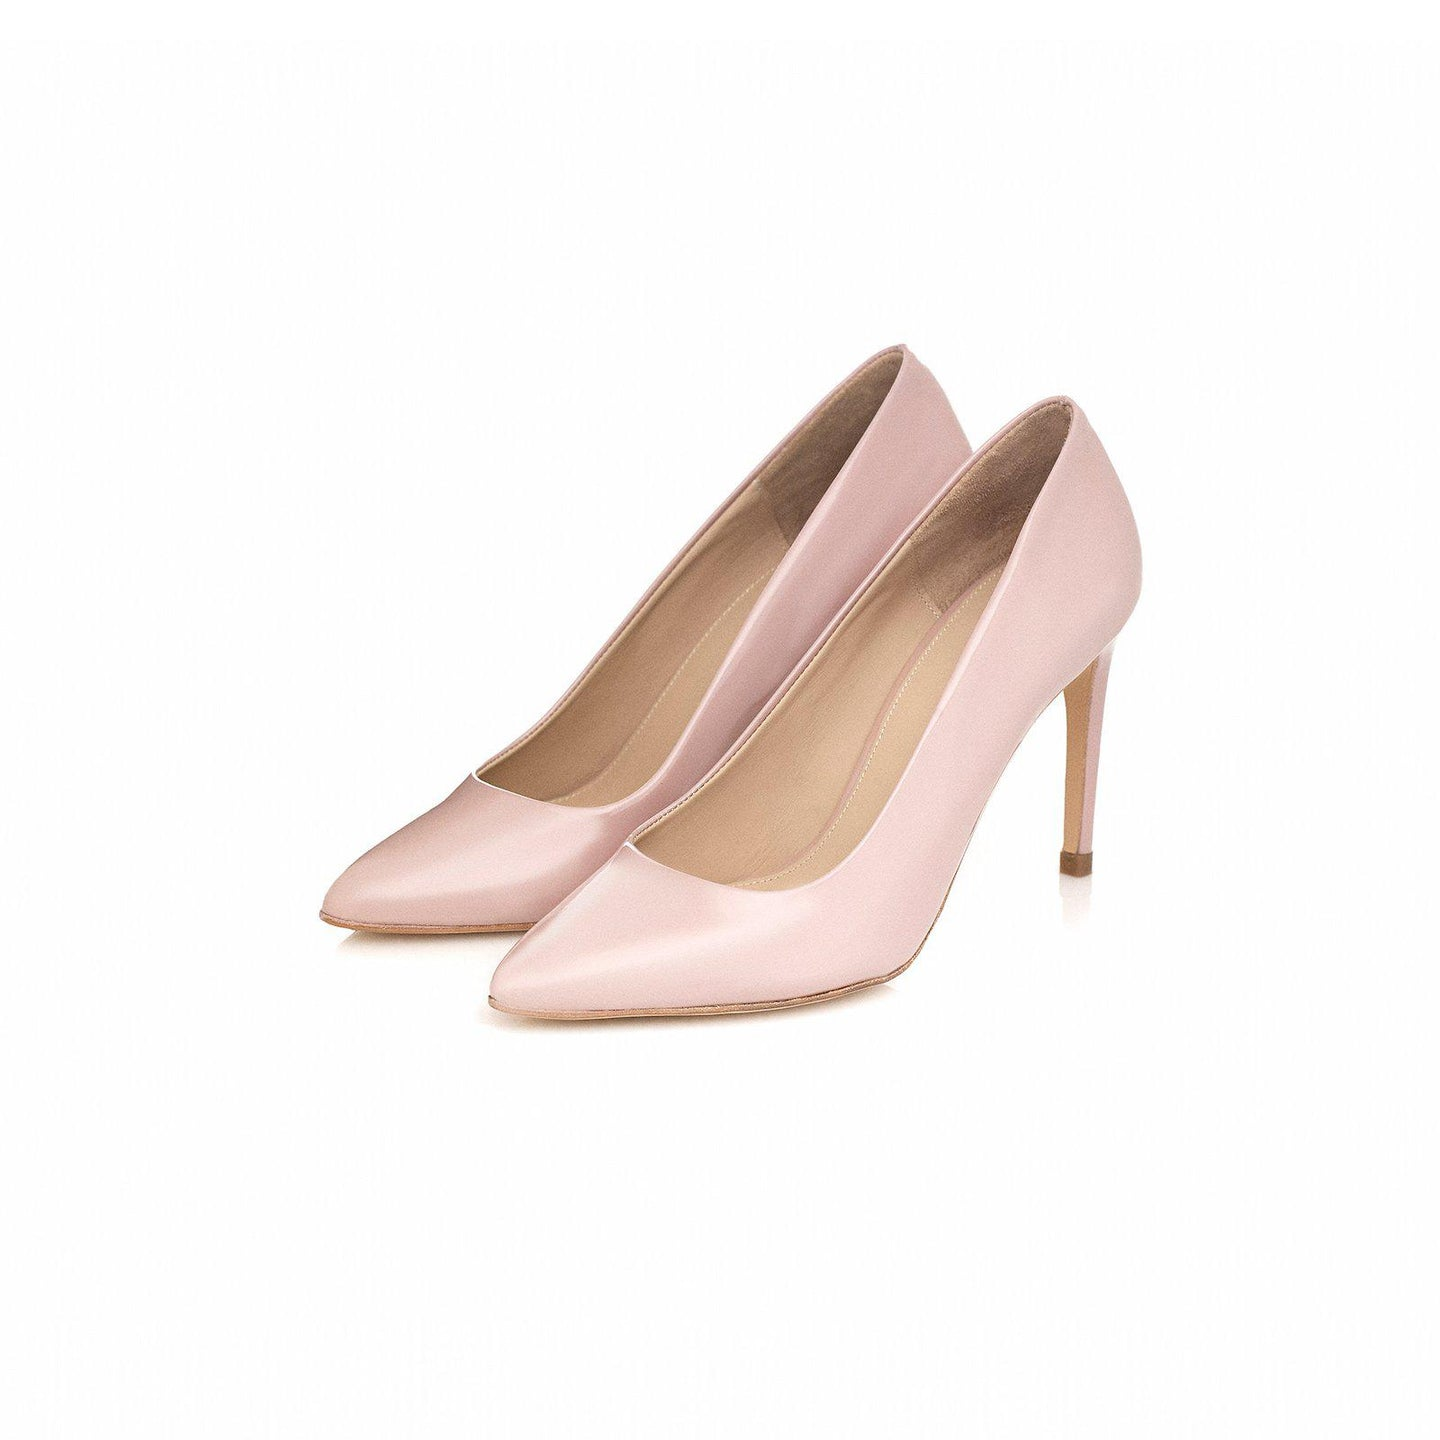 BRIGITTE PUMP 90-shoes-augustha-pu·rist